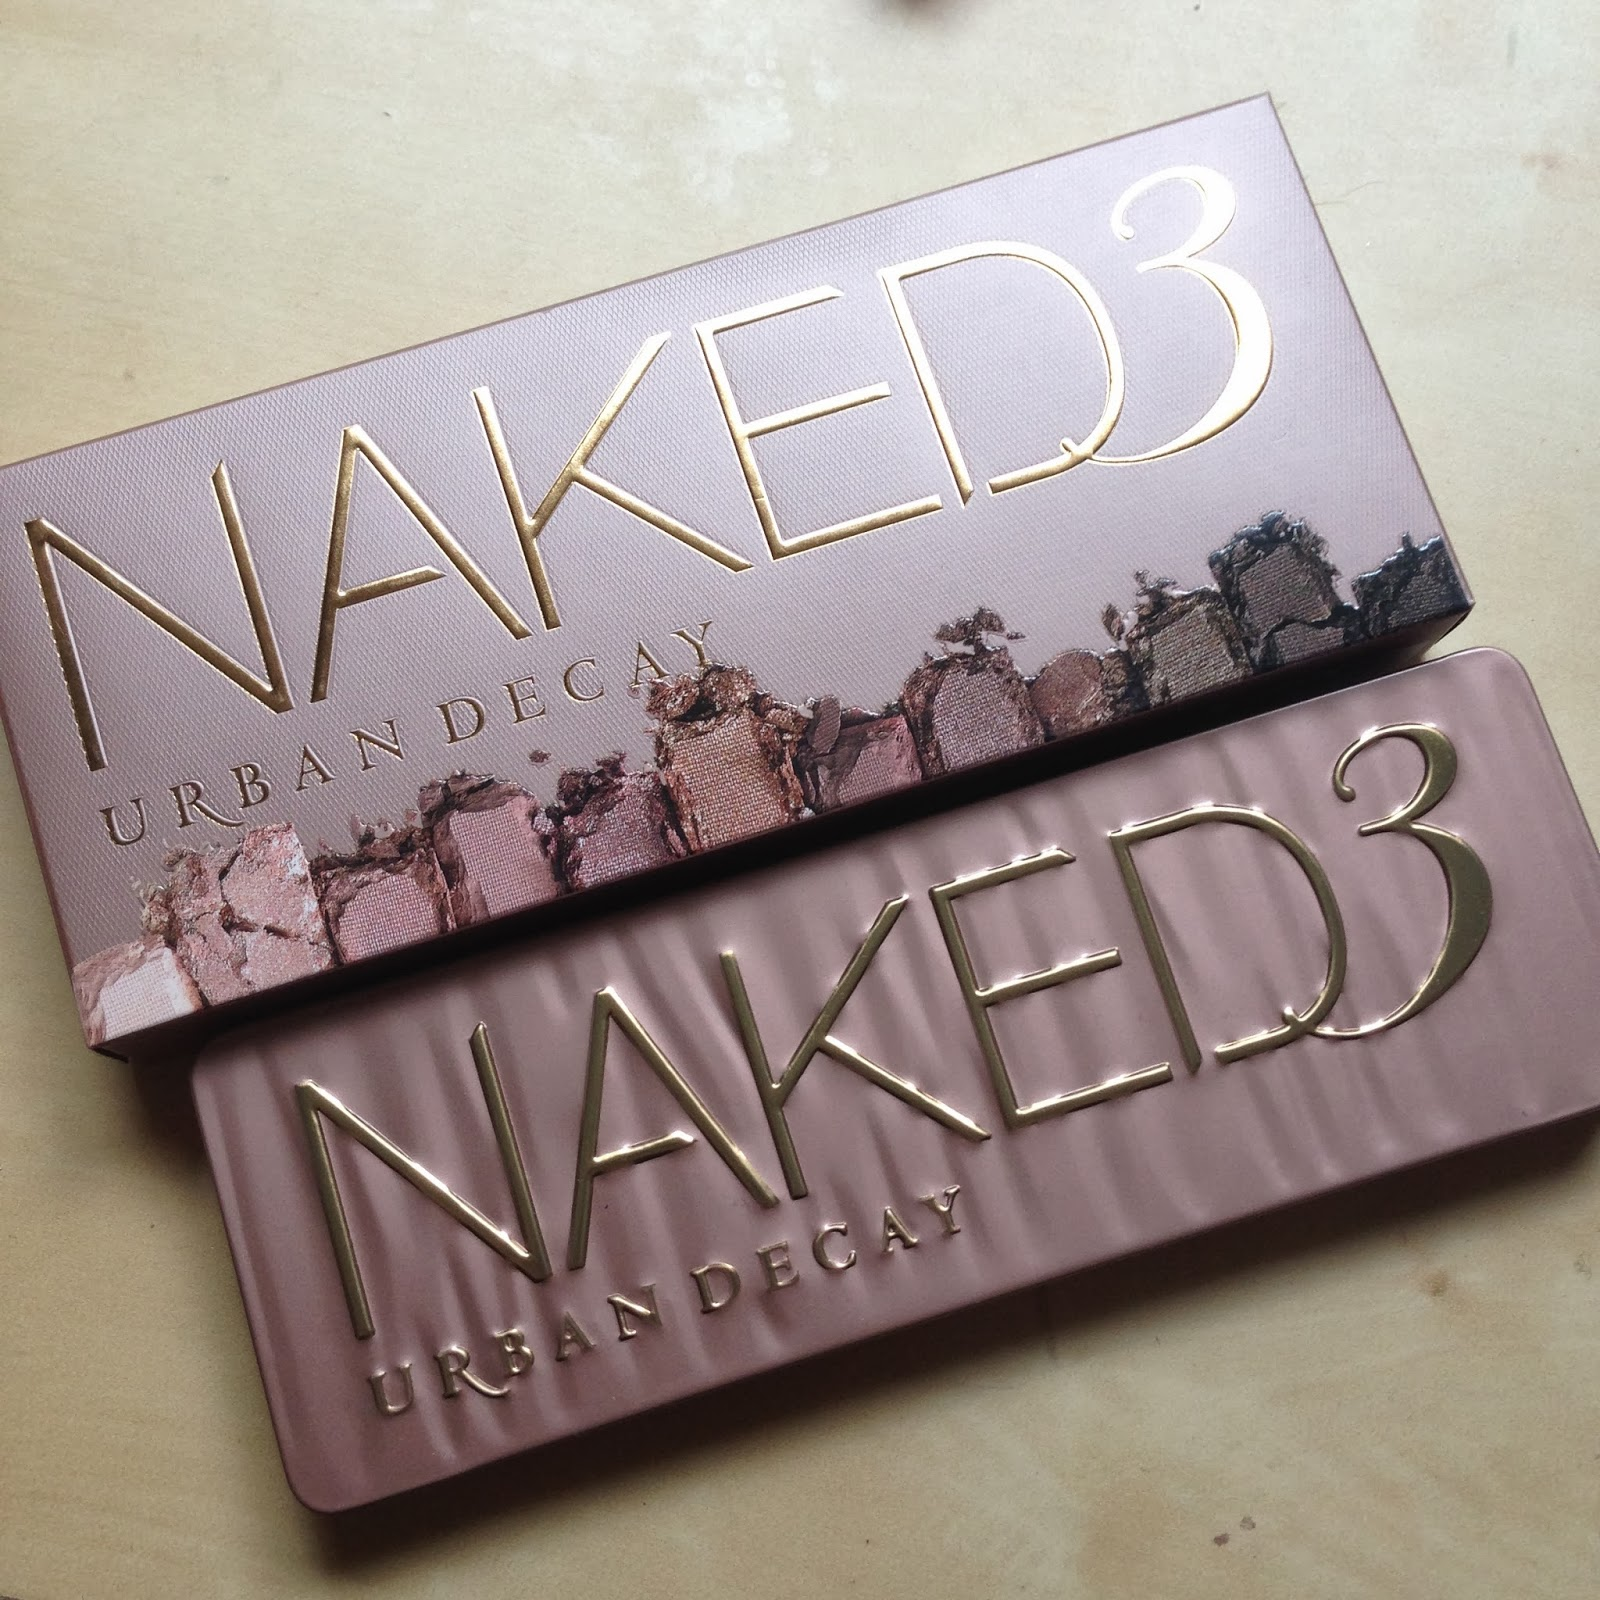 Urban-Decay-Naked-3-Palette-Review-7 - Beauty Trends and